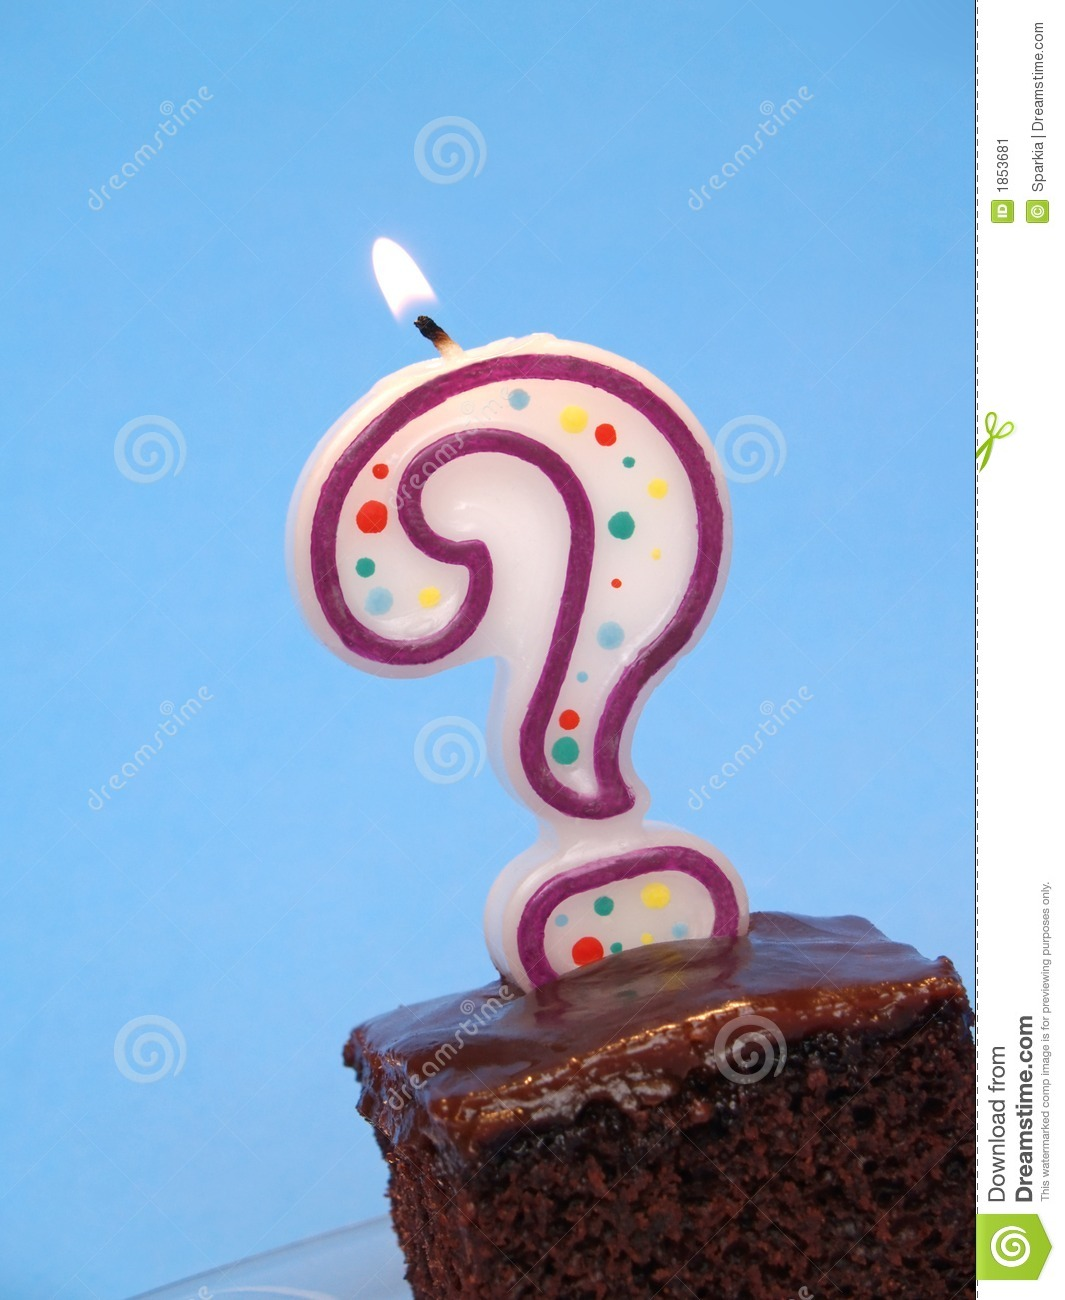 More similar stock images of birthday cake with question candle